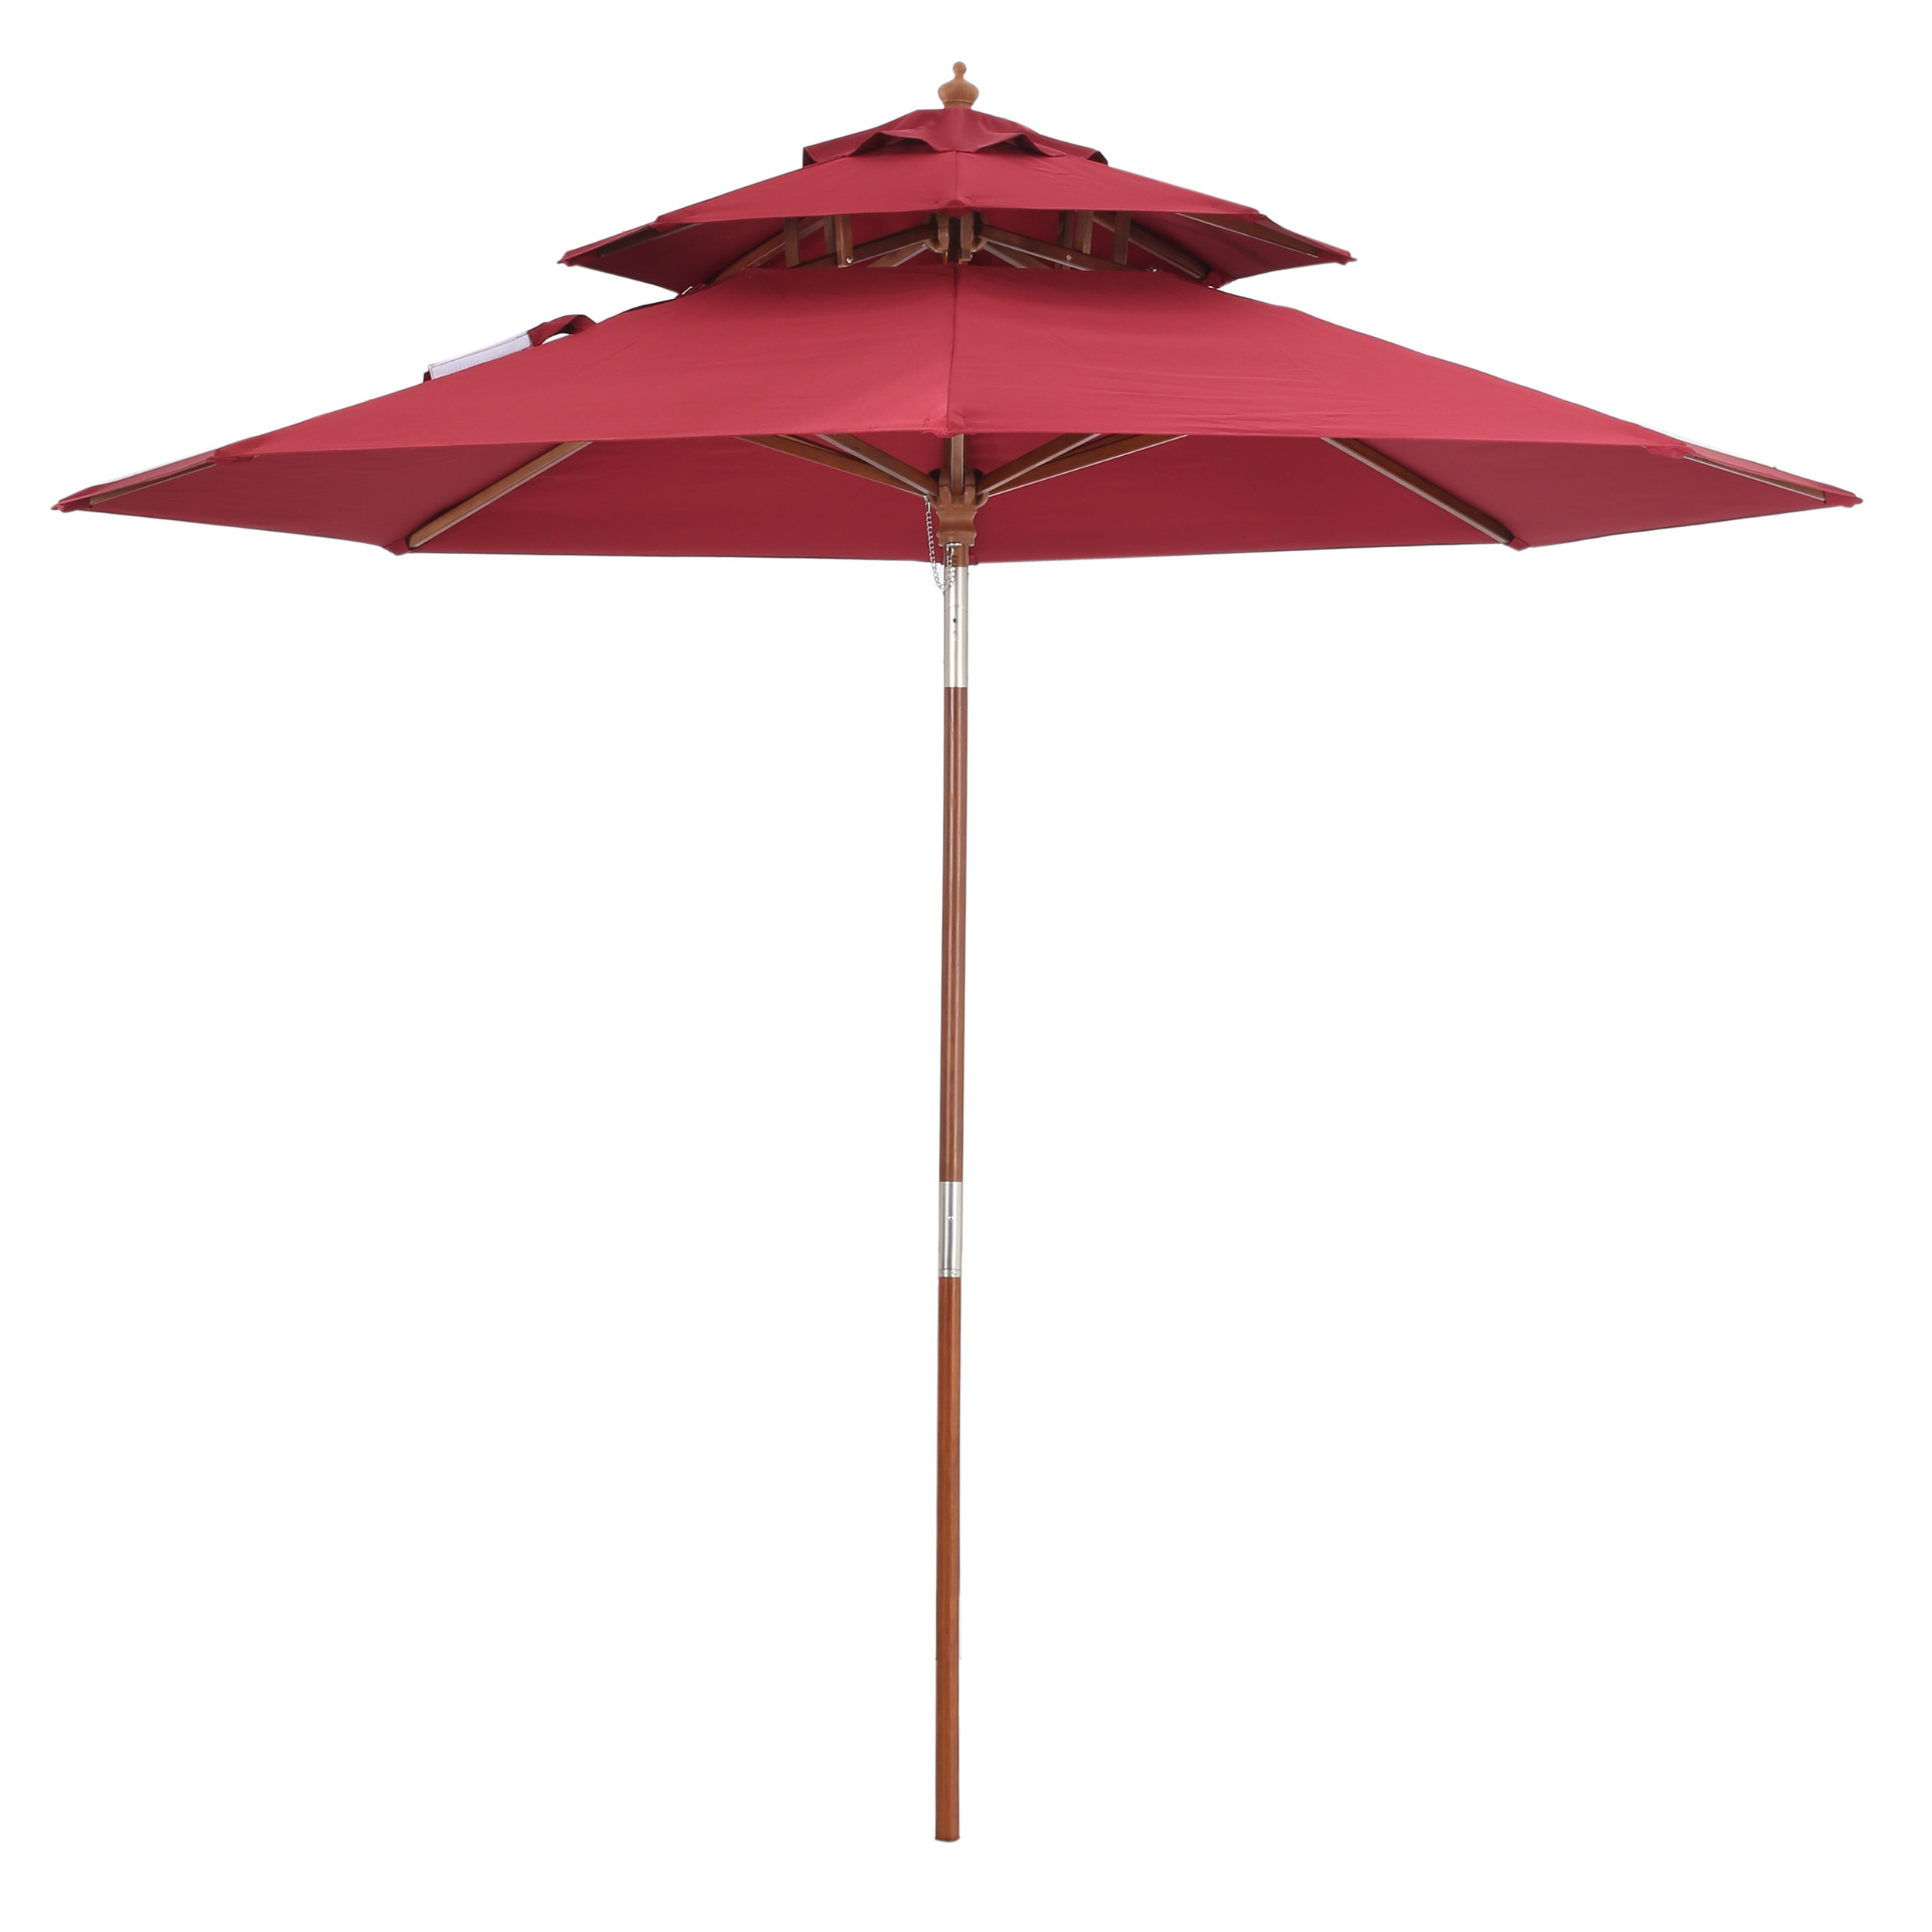 Lizarraga Market Umbrellas Throughout Most Popular Zeigler 9' Market Umbrella (Gallery 12 of 20)